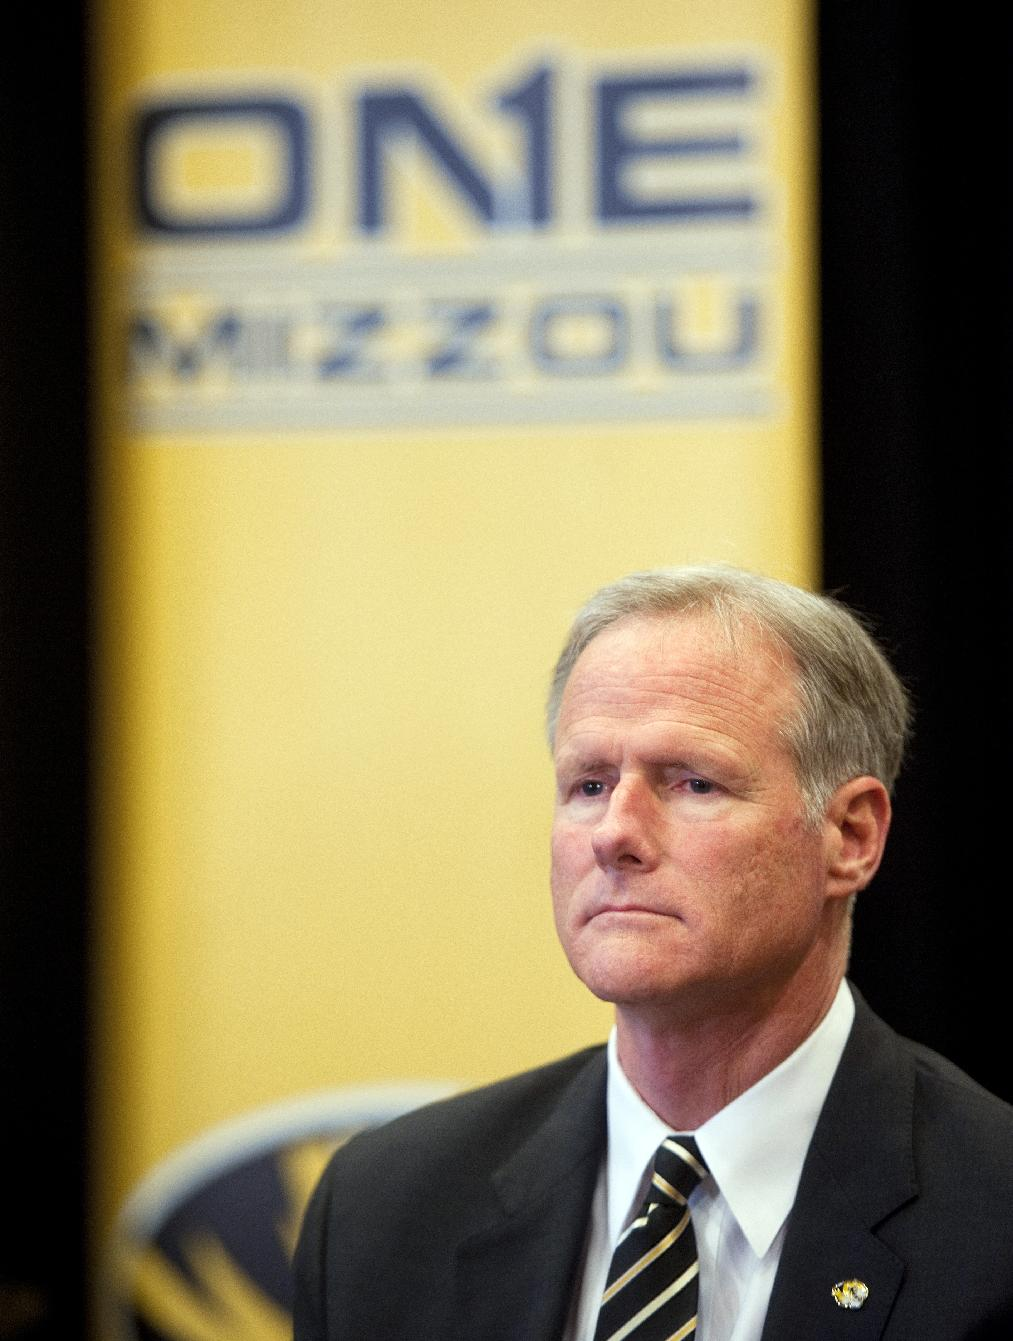 New Missouri men's basketball coach Kim Anderson waits to be introduced at an NCAA college basketball news conference in the Reynolds Alumni Center on Tuesday, April 29, 2014, in Colubia, Mo